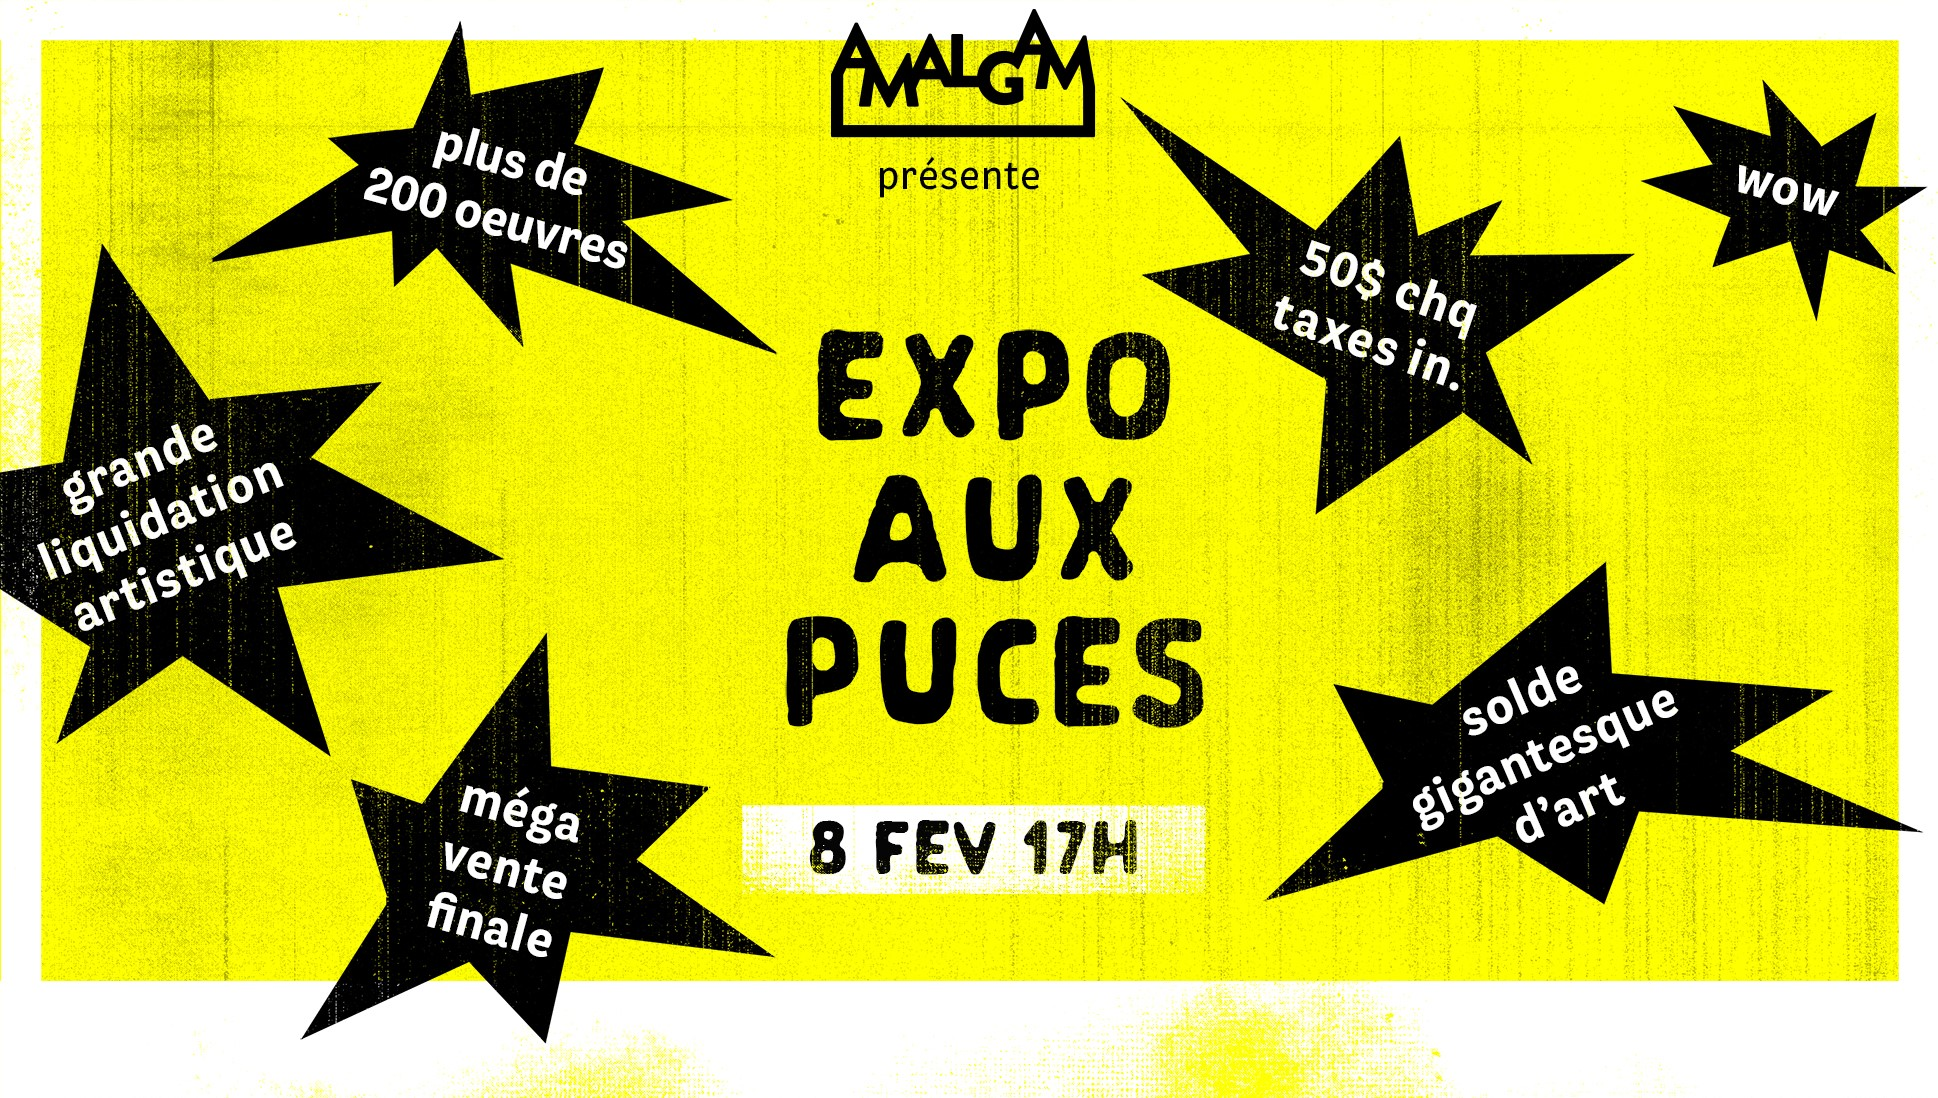 Expo Aux Puces - Affordable Art Show